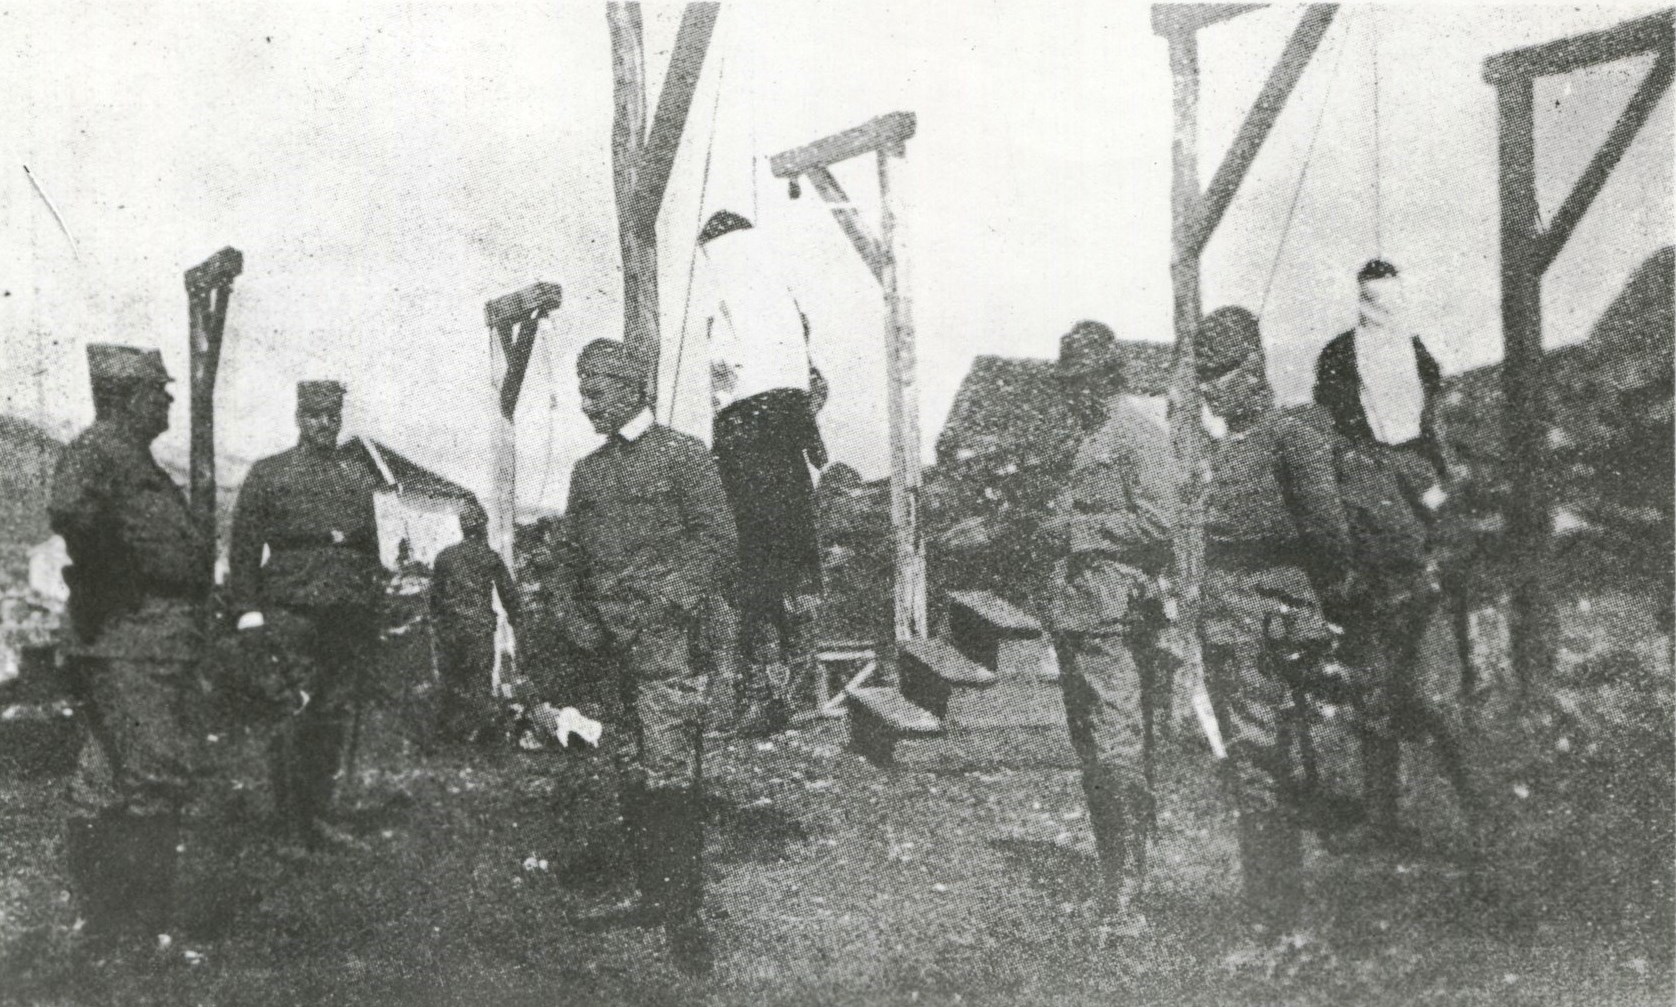 The Austro-Hungarians' official photograph of the hanging